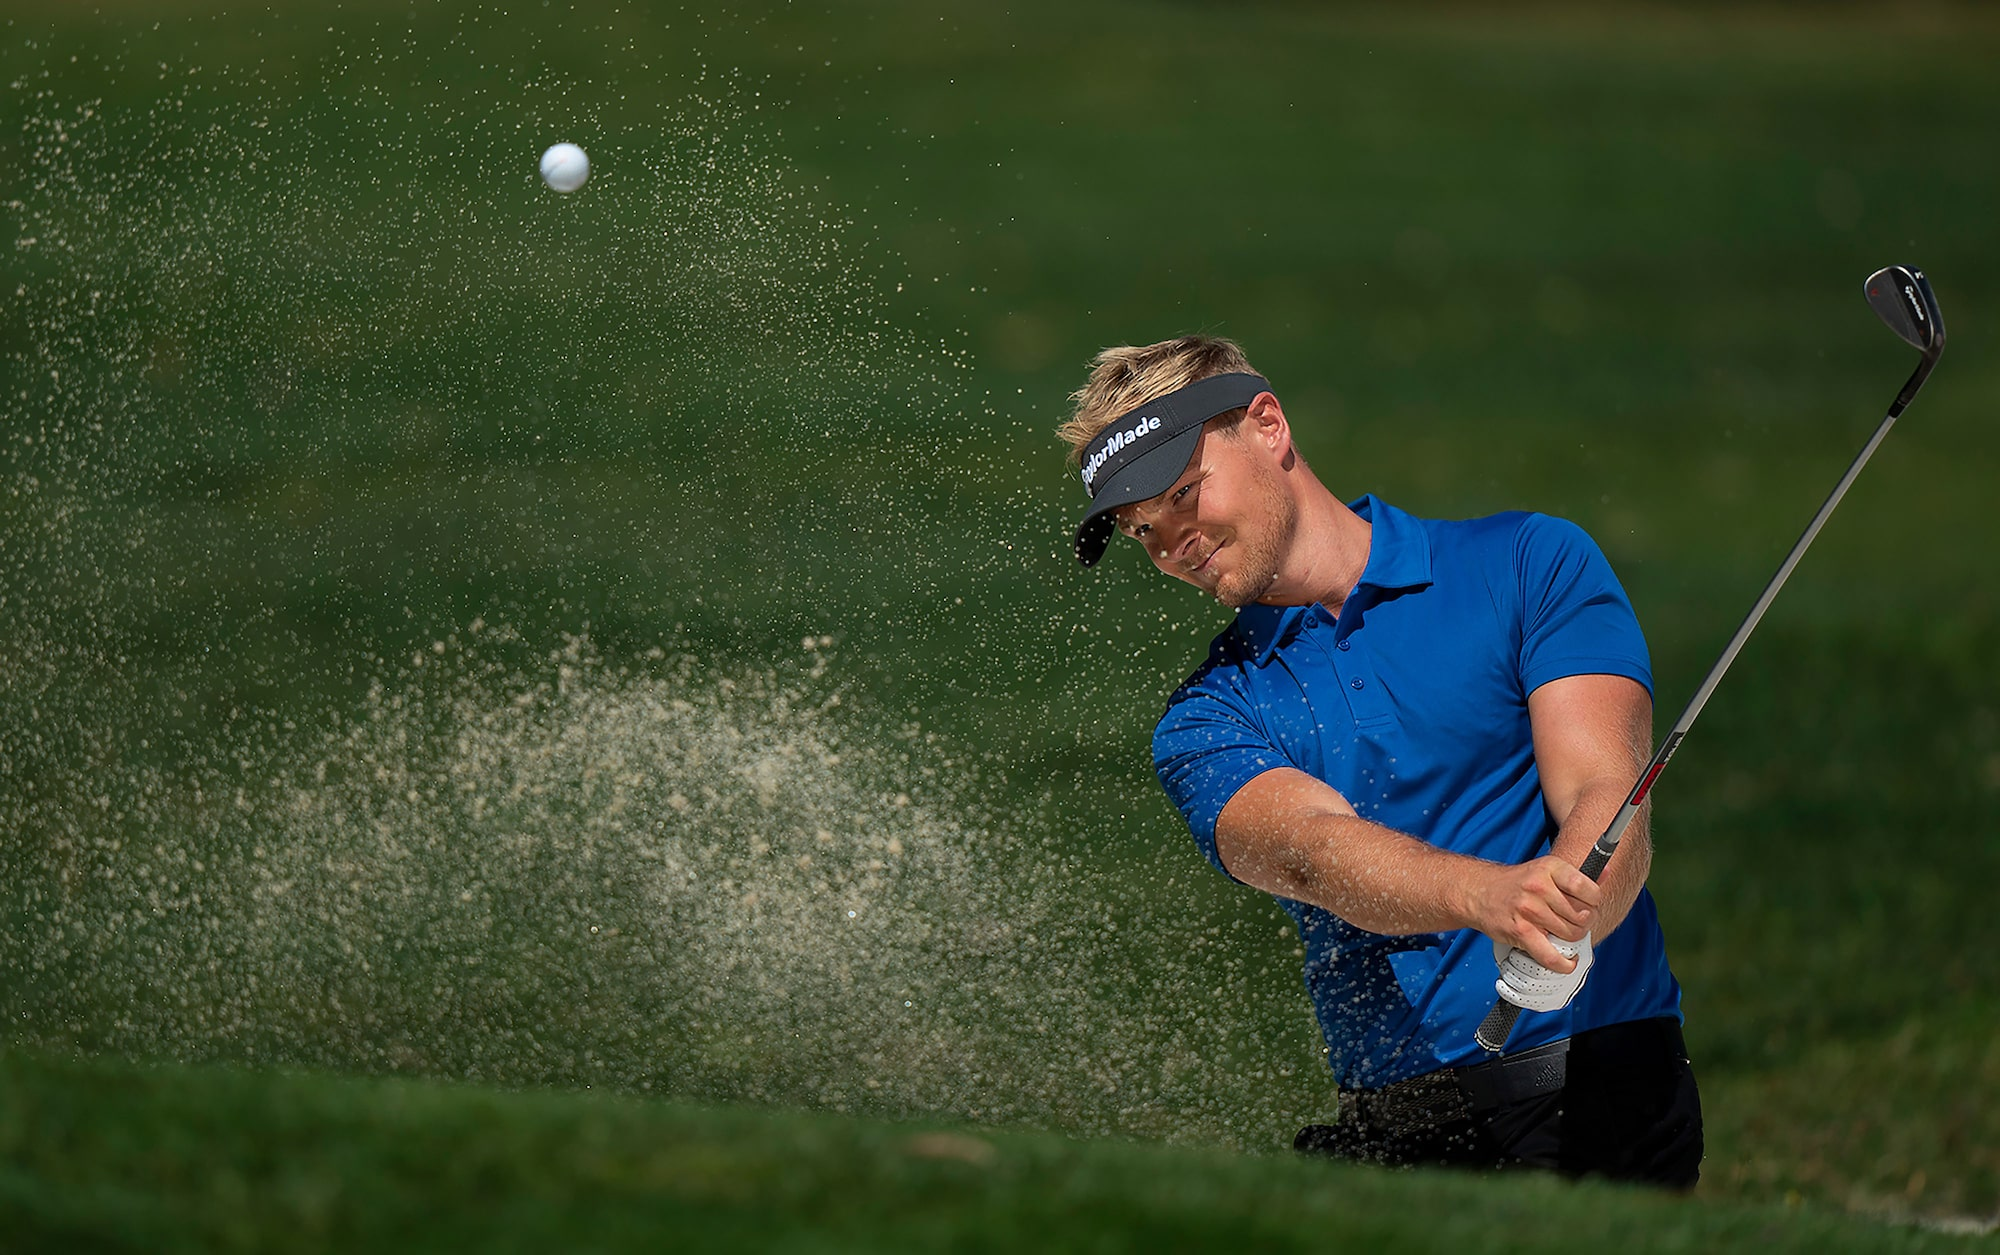 Bob-Martin-sony-alpha-9-golfer-hits-his-ball-out-of-a-bunker